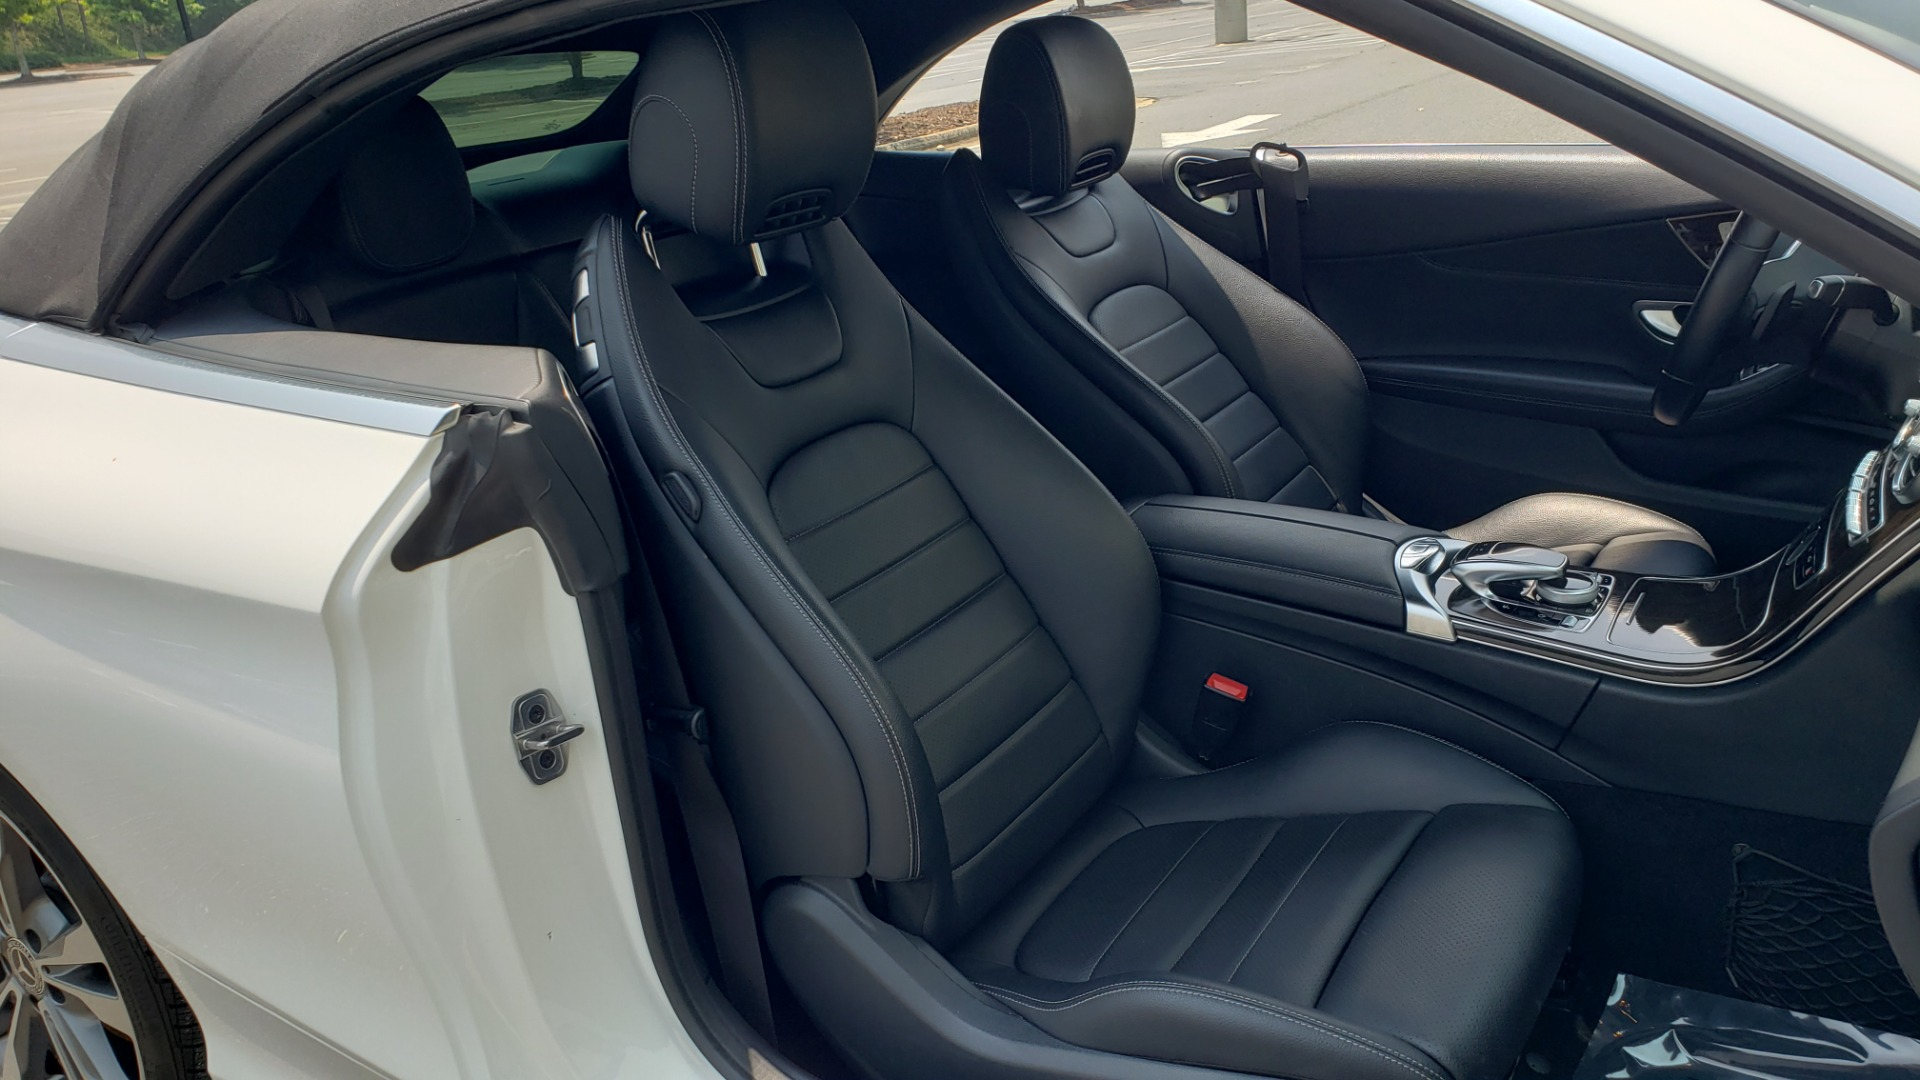 Used 2019 Mercedes-Benz C-CLASS C 300 CABRIOLET 2.0L / AUTO / NAV / HD RADIO / REARVIEW for sale $46,995 at Formula Imports in Charlotte NC 28227 67